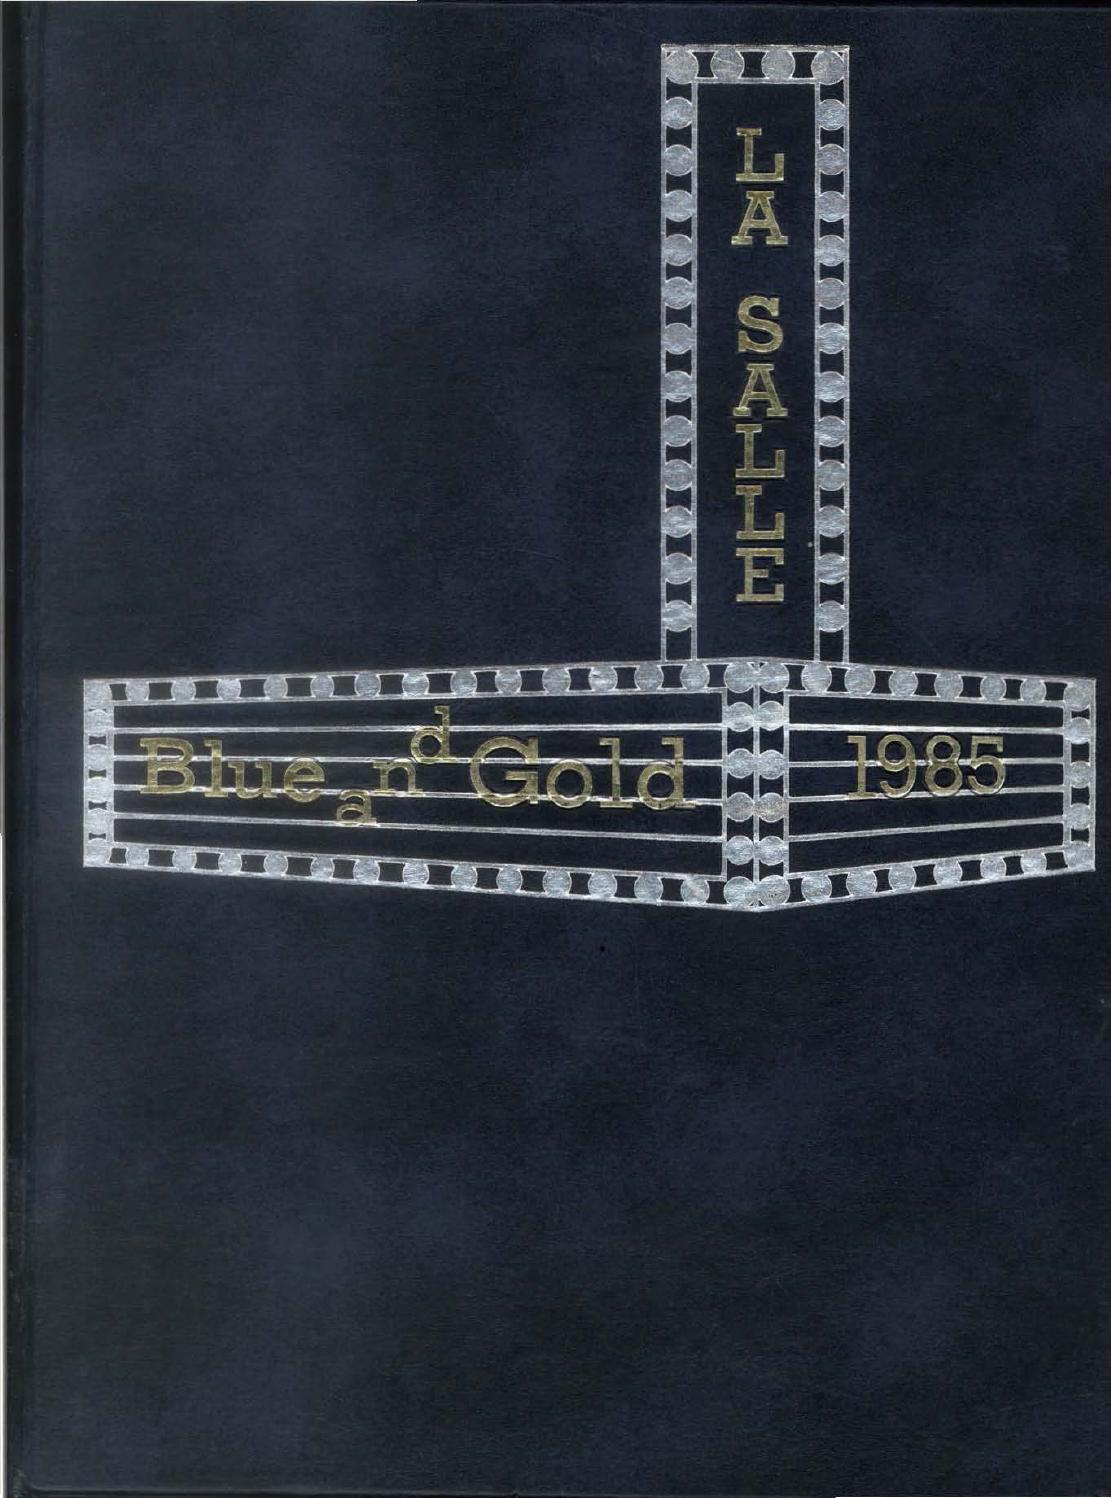 1985 Blue And Gold Yearbook By La Salle College High School Issuu